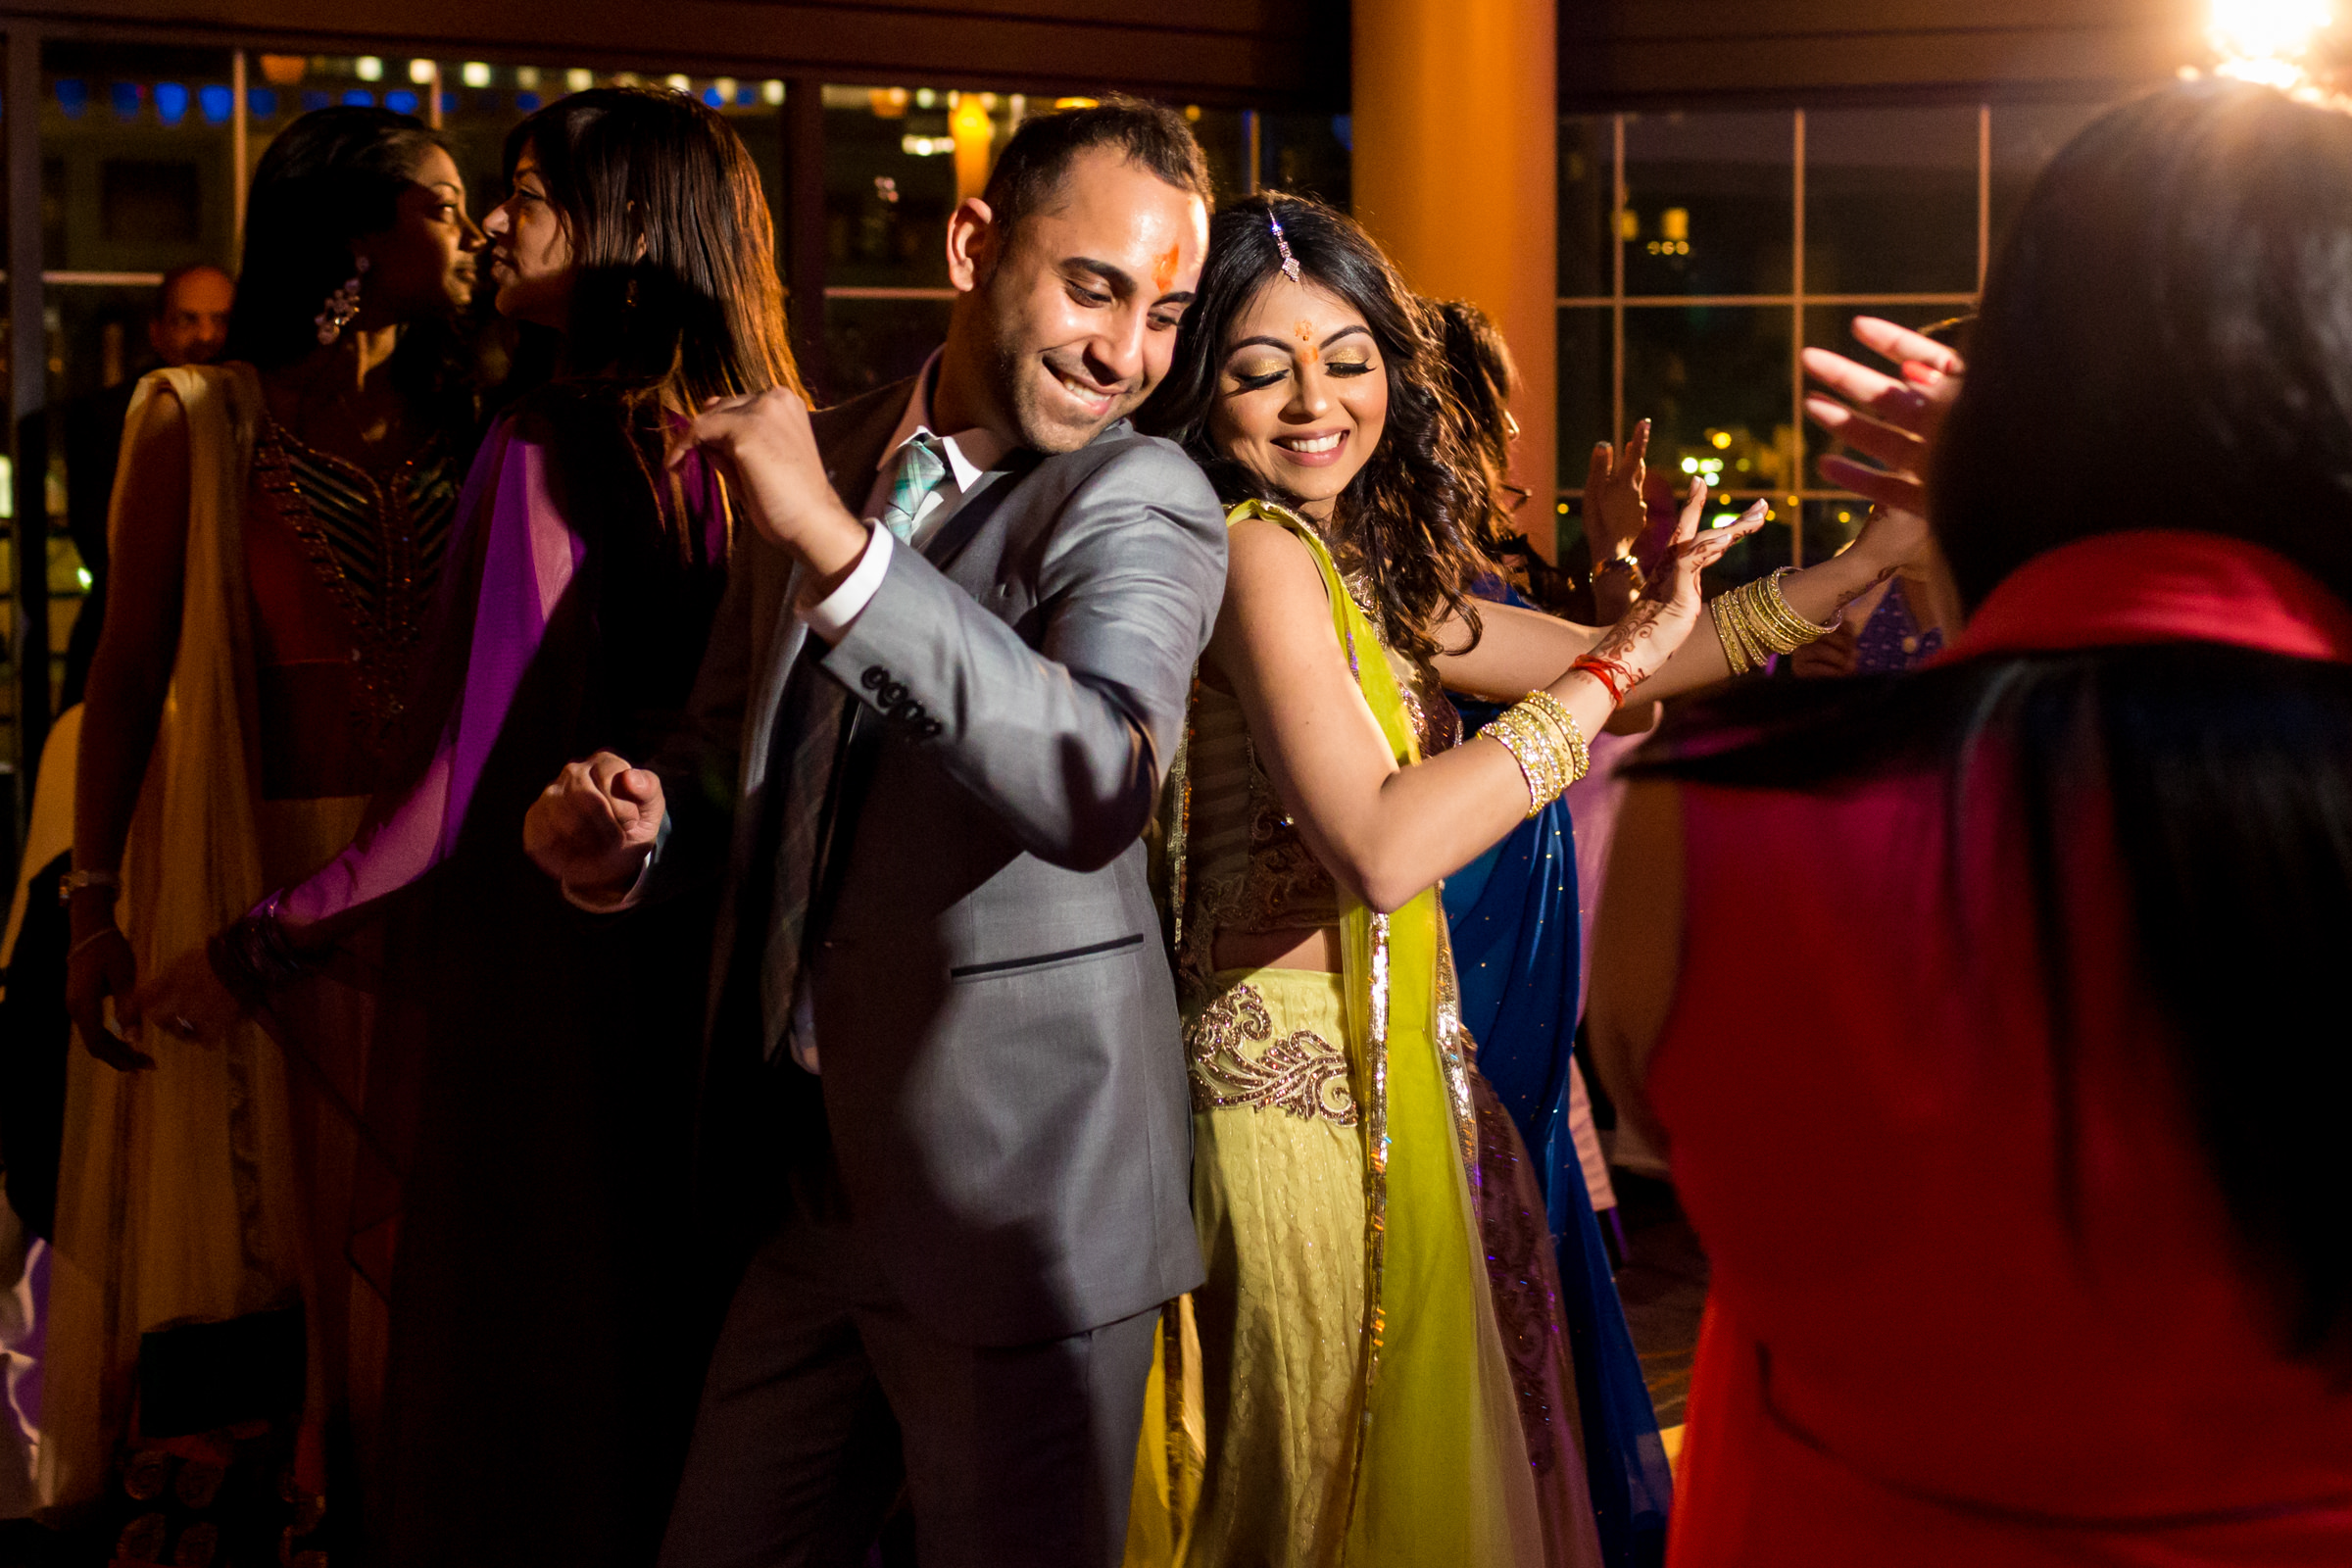 Couple dancing back to back - photo by Procopio Photography